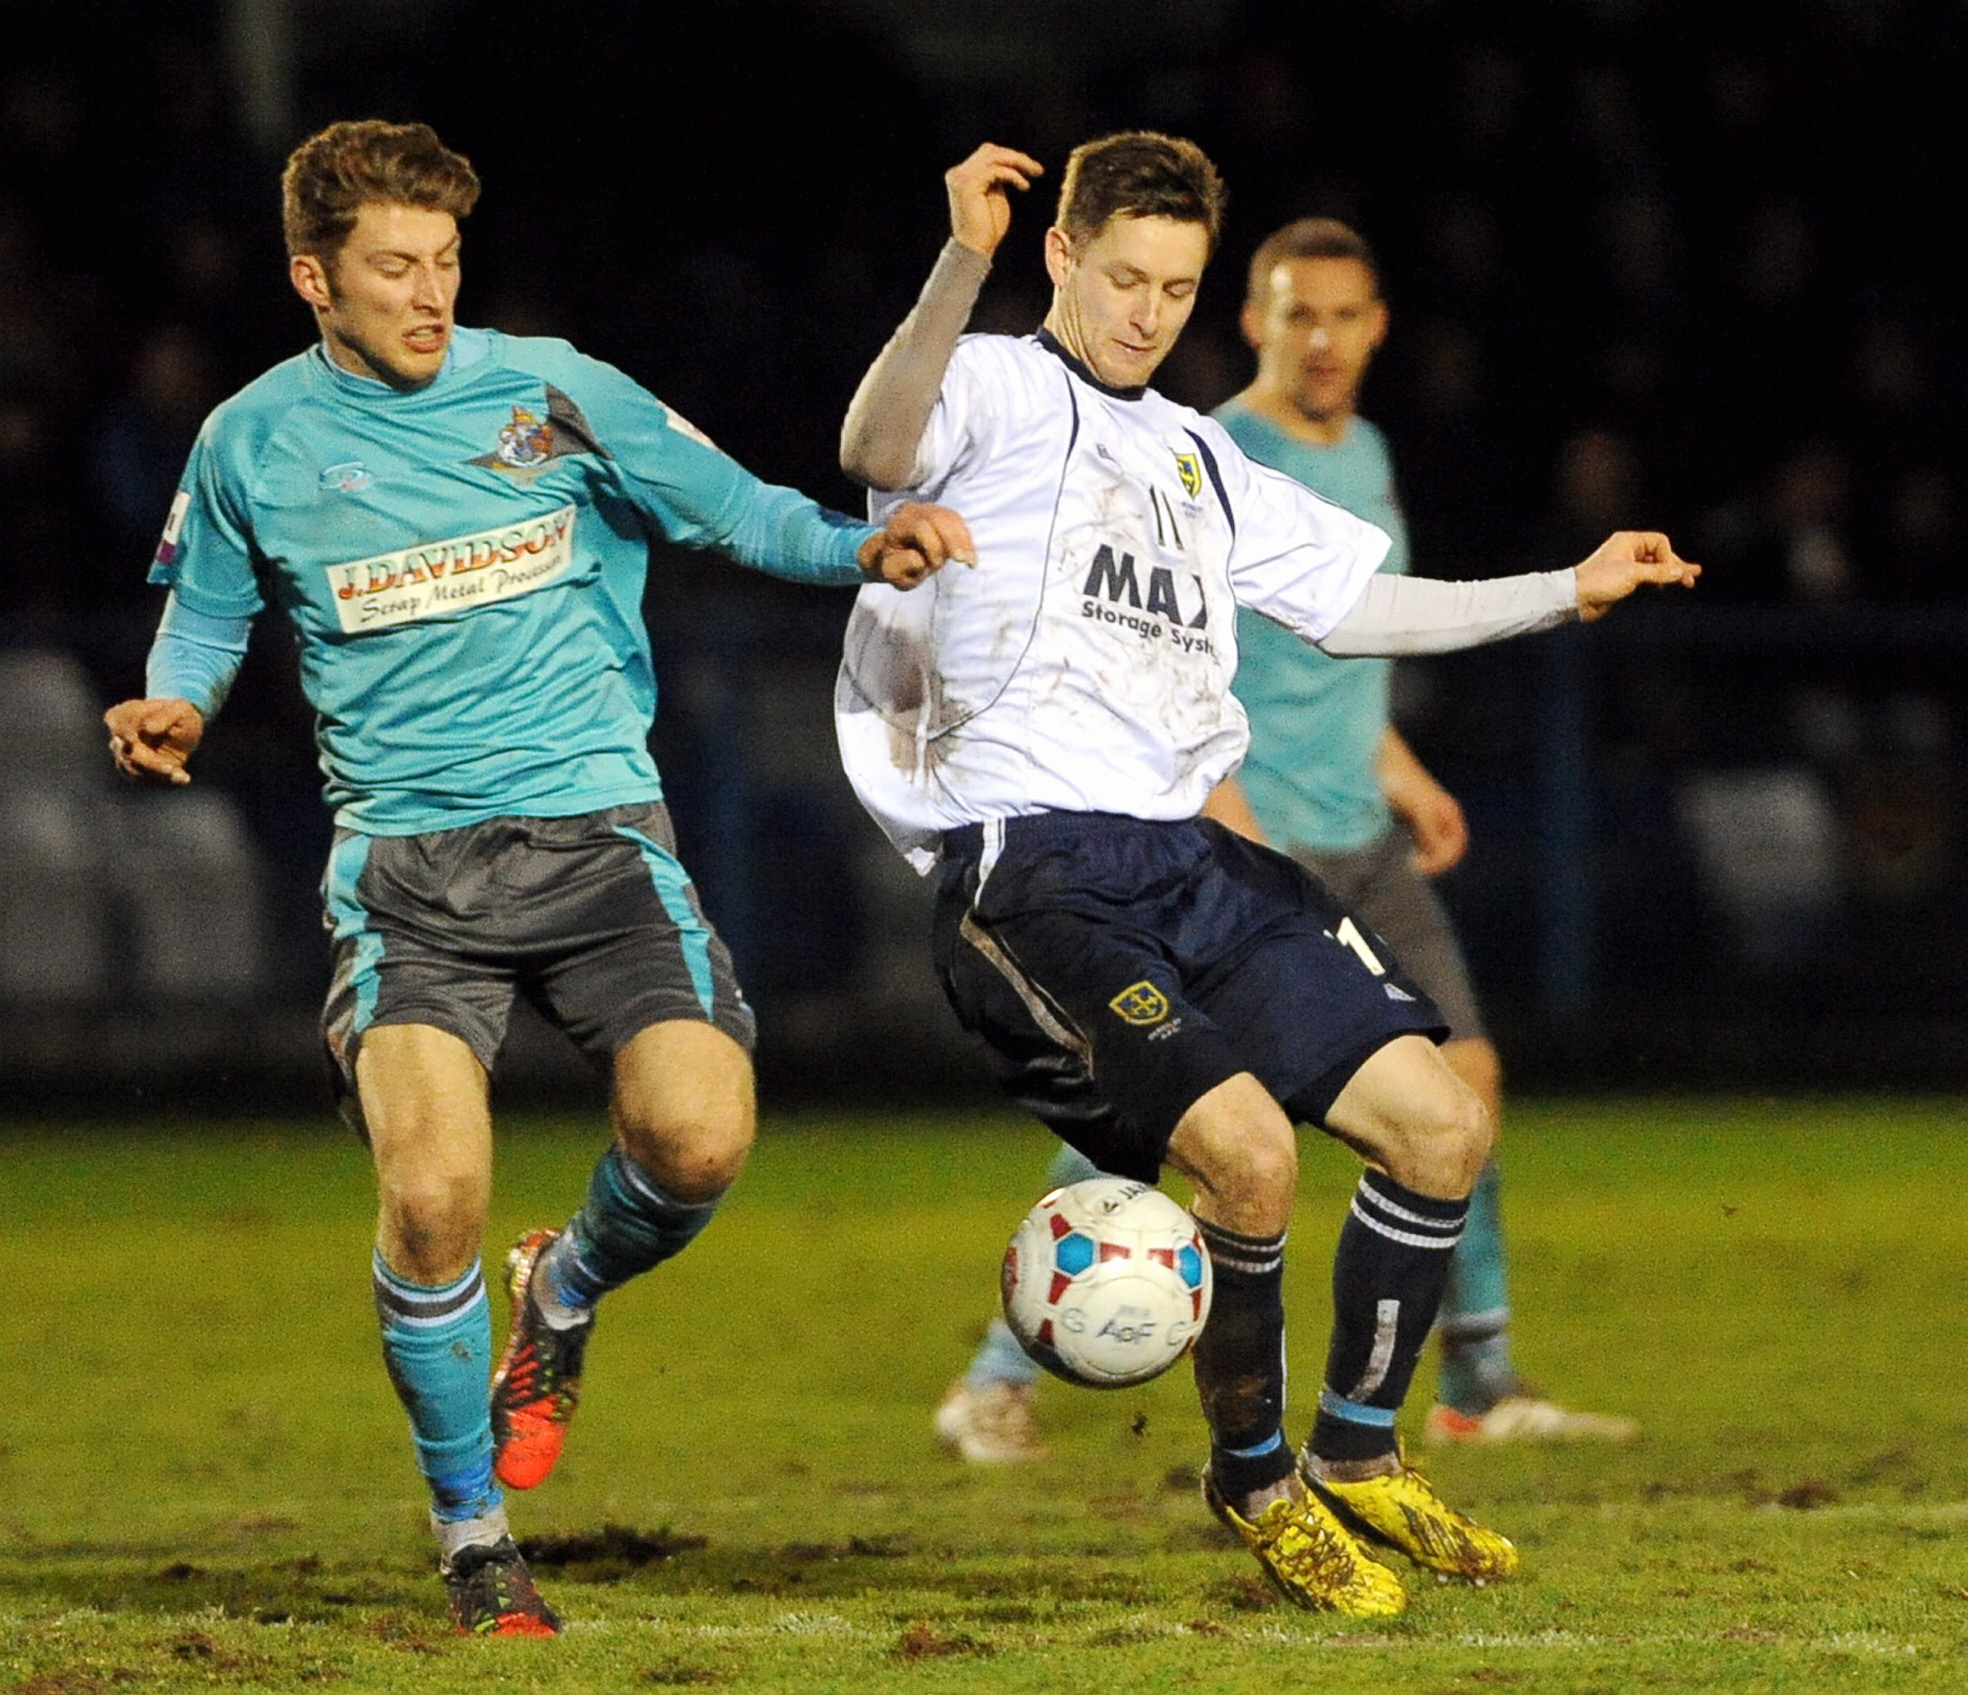 LONG TIME NO SEE: Gavin Rothery in action during the 2-2 draw with Altrincham on December 21, which was the last time the Lions were in action at Nethermoor